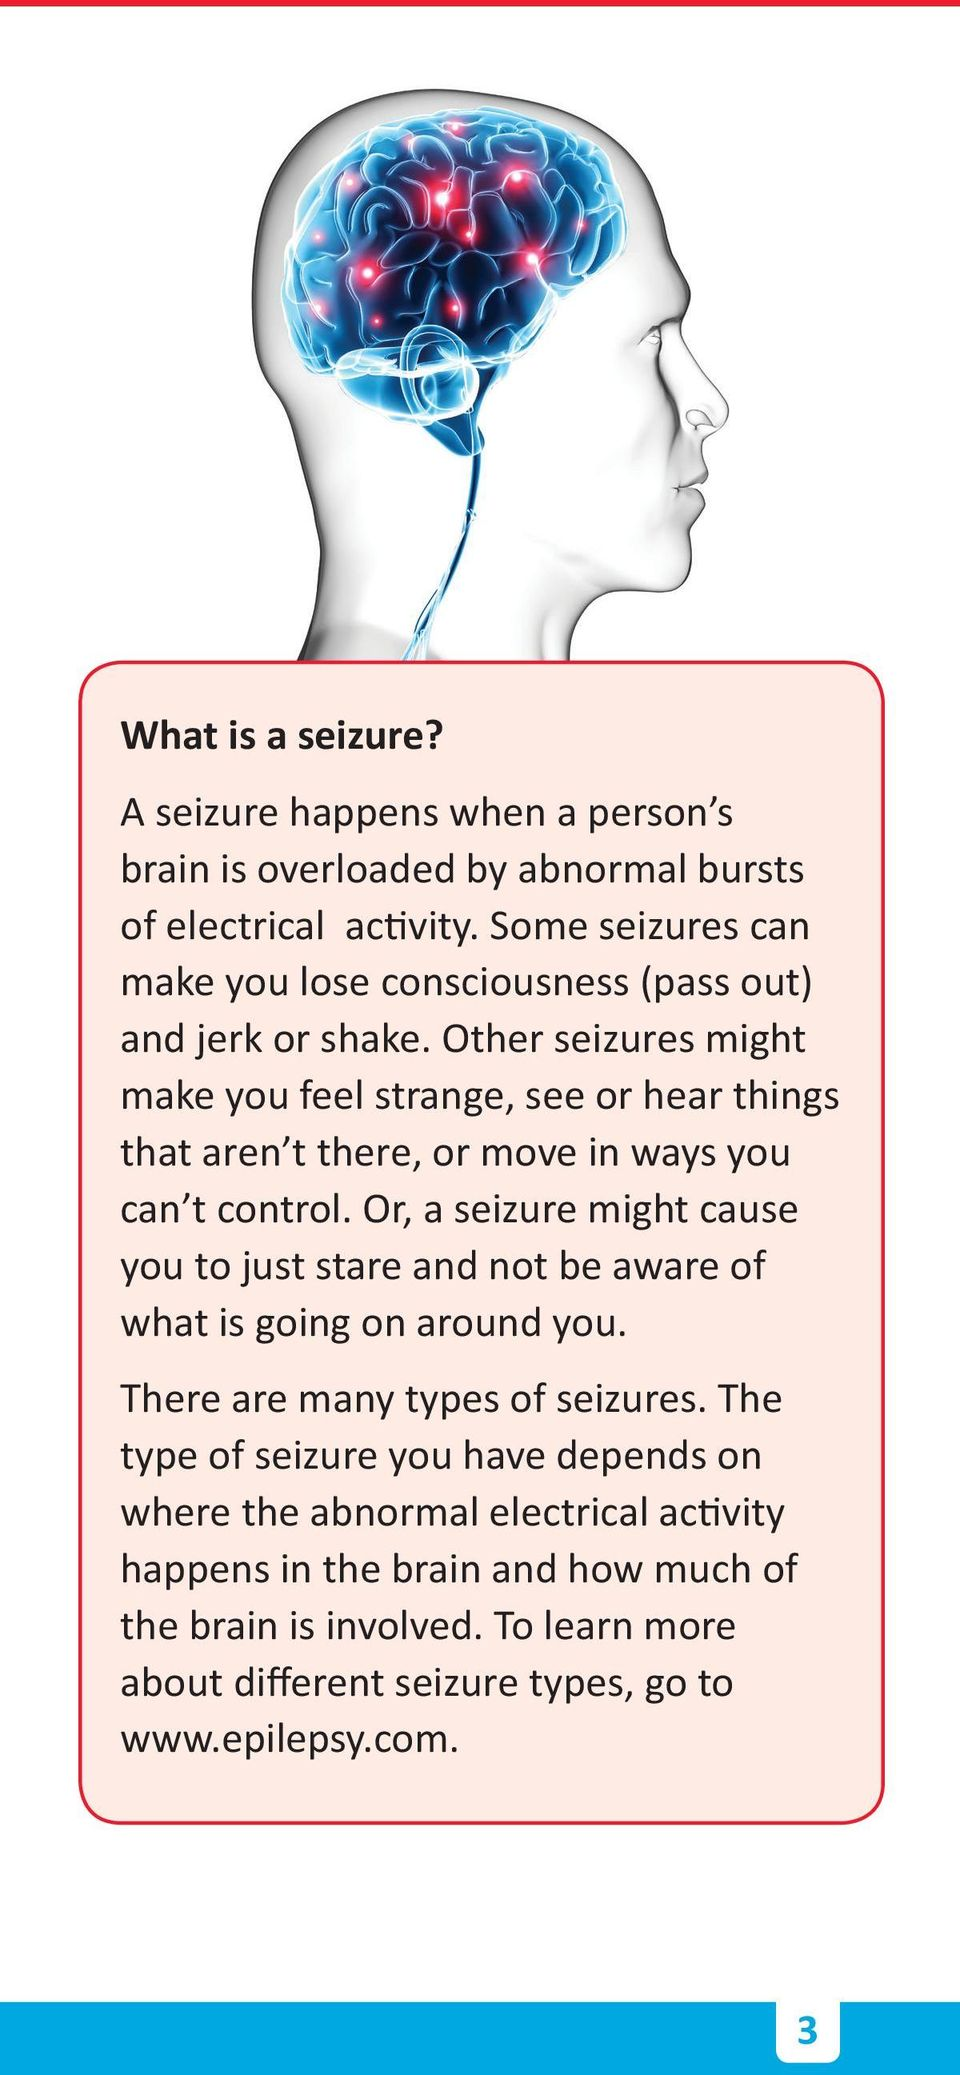 Other seizures might make you feel strange, see or hear things that aren t there, or move in ways you can t control.